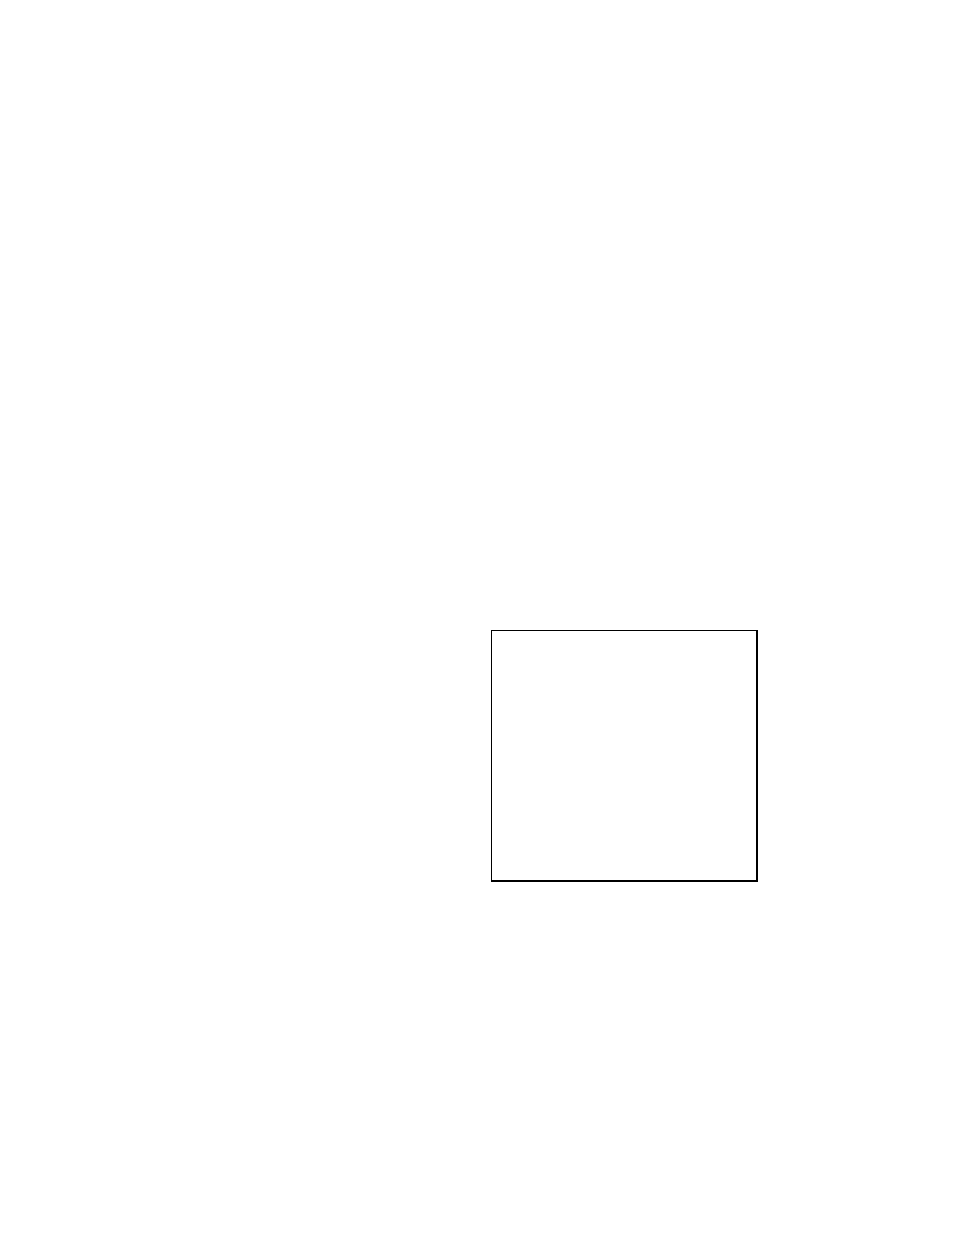 Troubleshooting | Equus 3551 - INNOVA Inductive Timing Light (DIS) User  Manual | Page